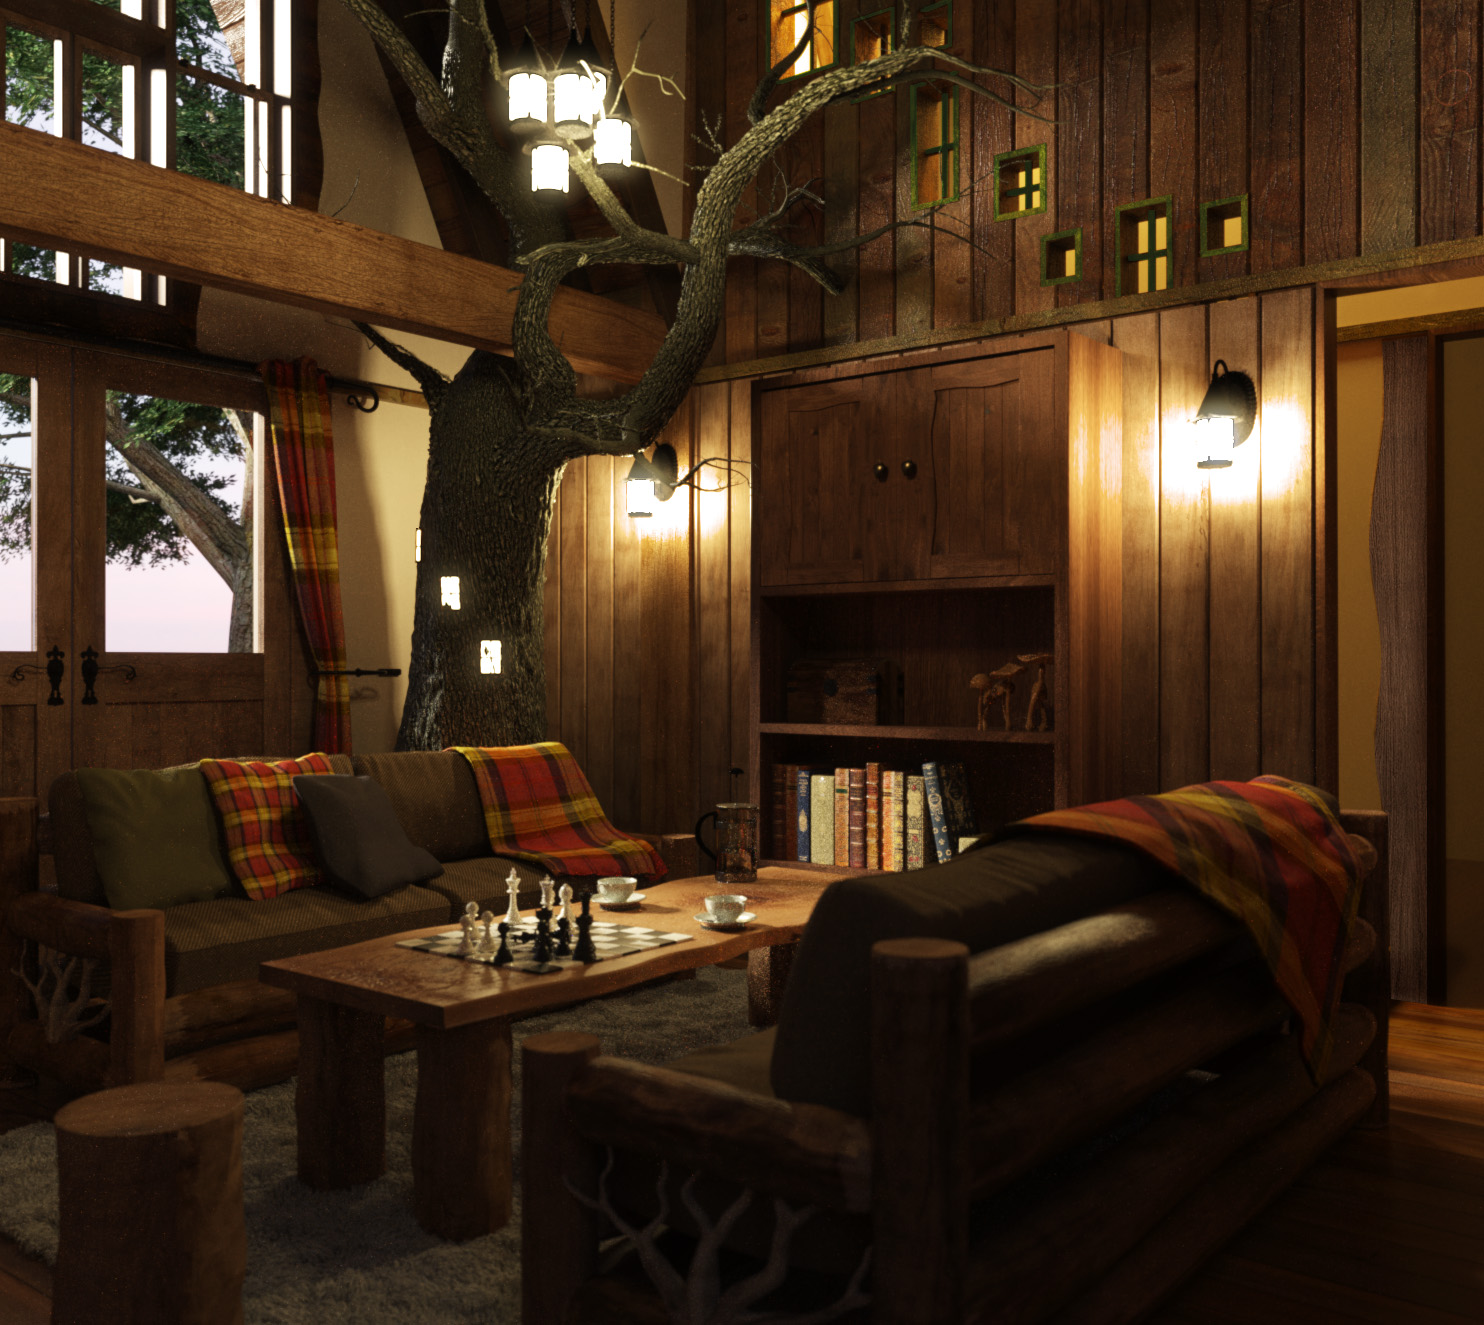 dark tree house interior, with a living tree, wooden paneling and two brown sofas, a rough wooden table and stool